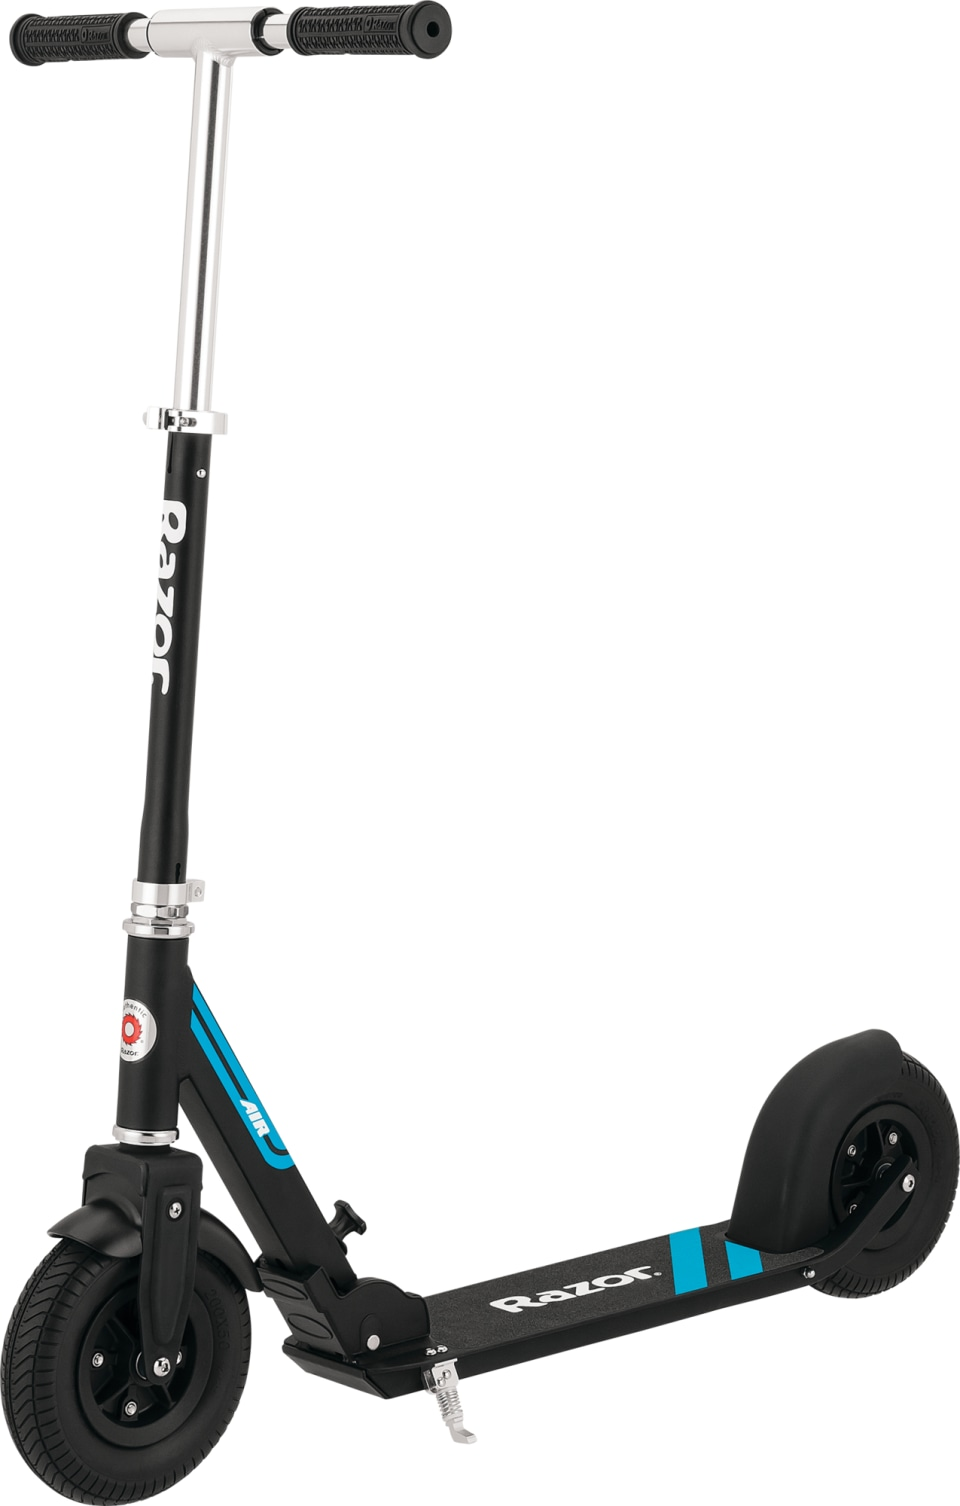 Large 8 Wheels Razor A5 Lux Kick Scooter Adjustable Handlebars Foldable for Riders up to 220 lbs Lightweight